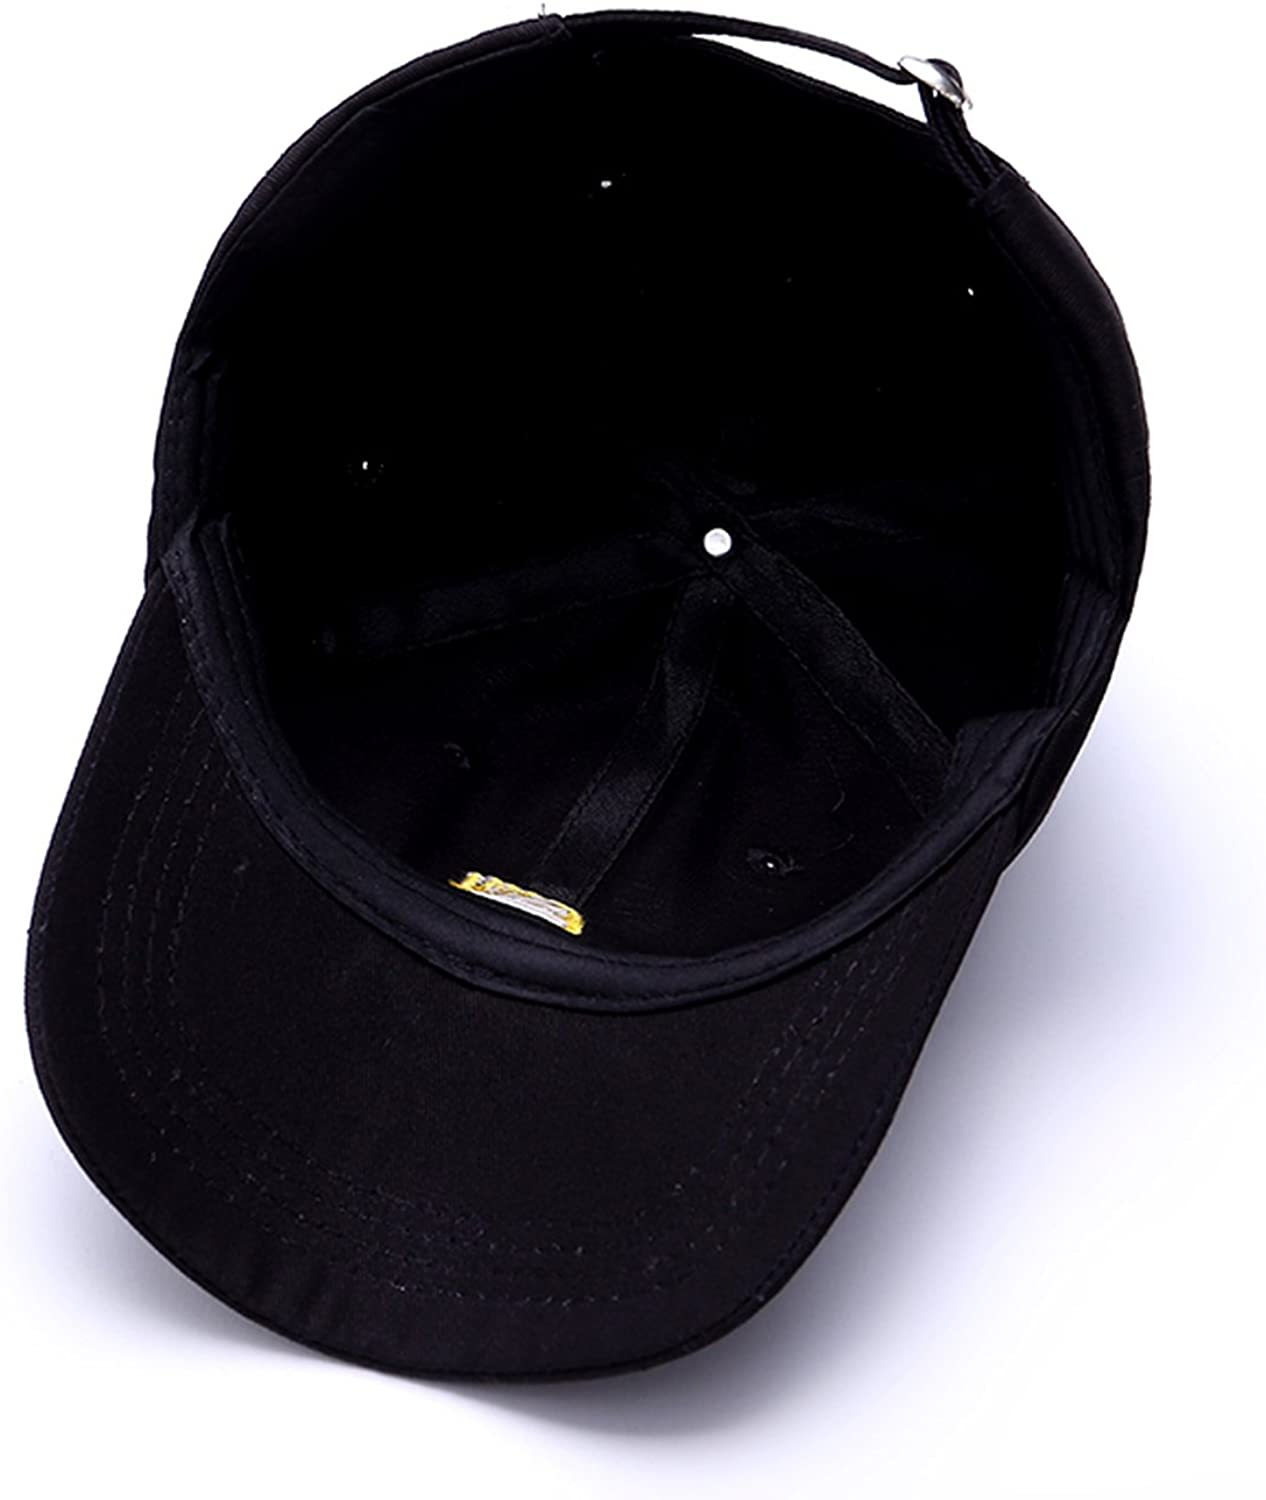 Wilbur Gold New 100/% Cotton Baseball Cap Embroidery Baseball Cap Fashion Hats for Men /& Women Dad Hat